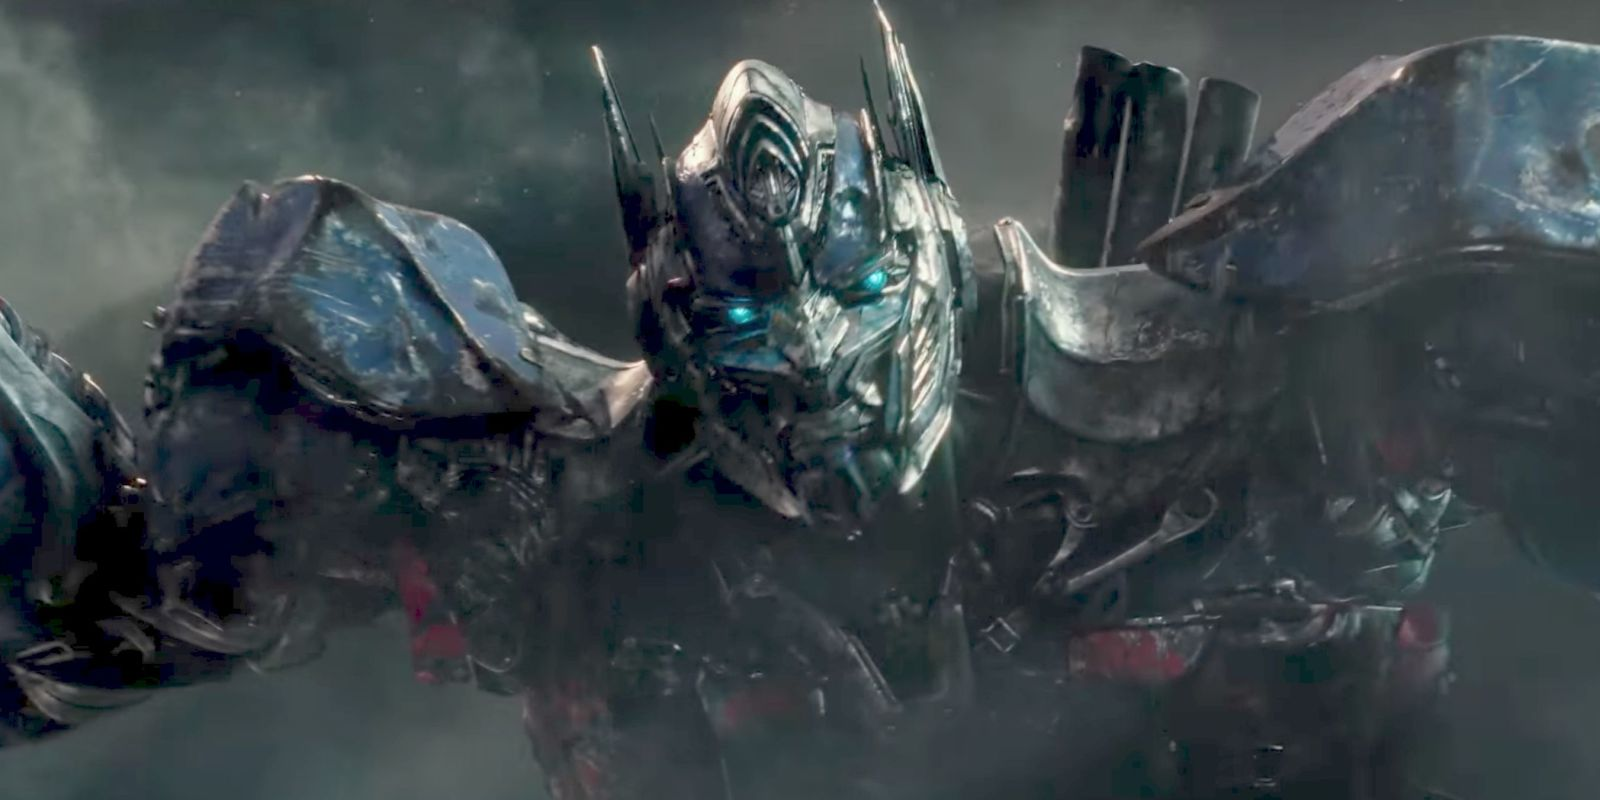 transformers the last knight review: chaos reigns in michael bay's